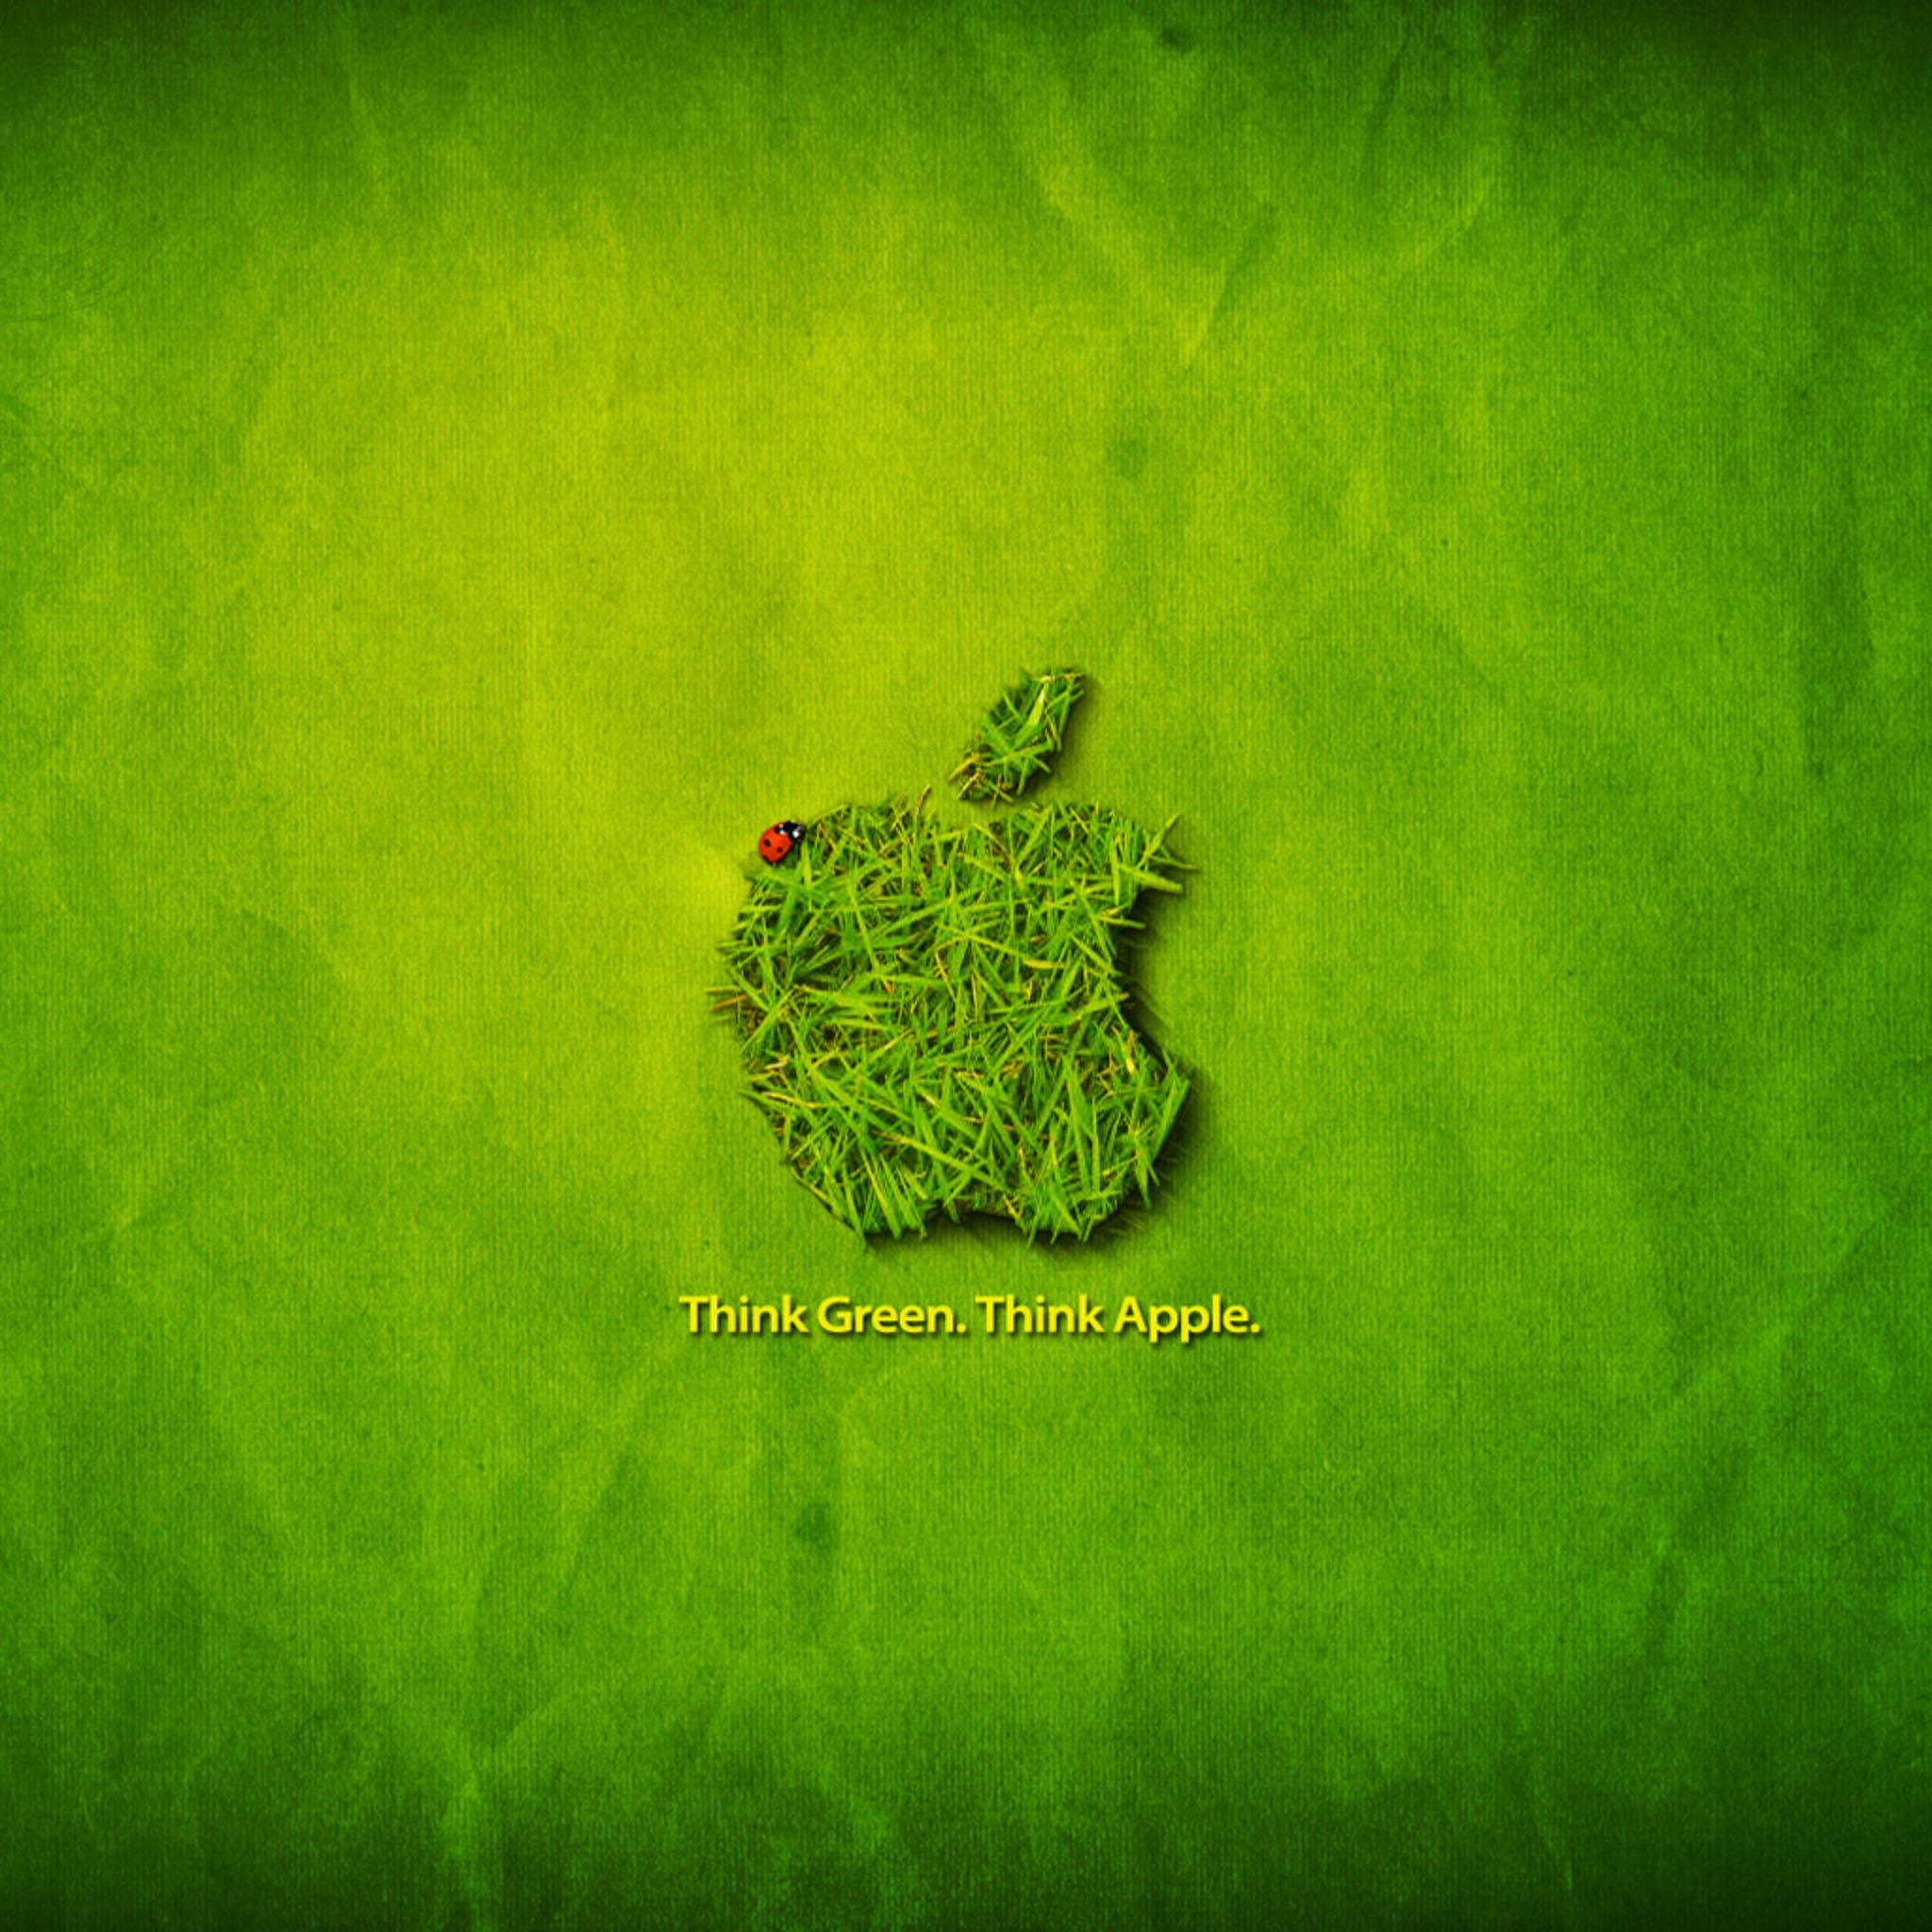 Think Green Think Apple iPad Air wallpaper